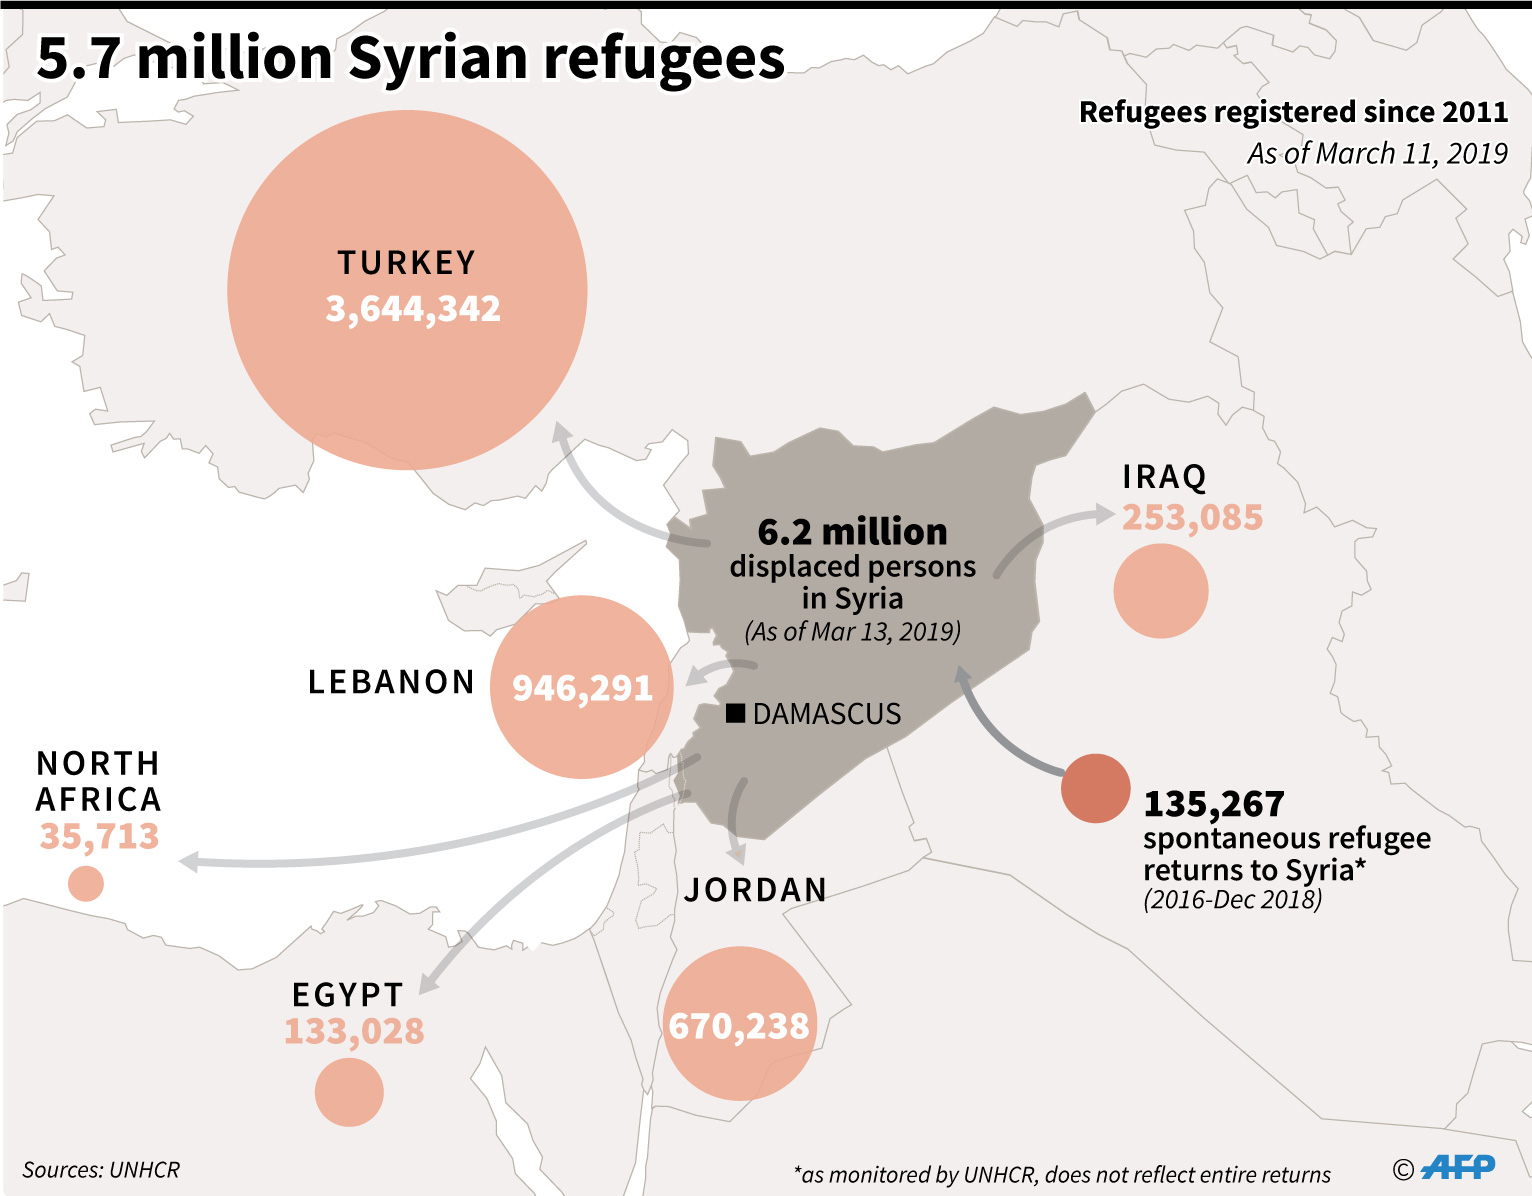 Map of Syria and the surrounding region locating refugee and IDP populations